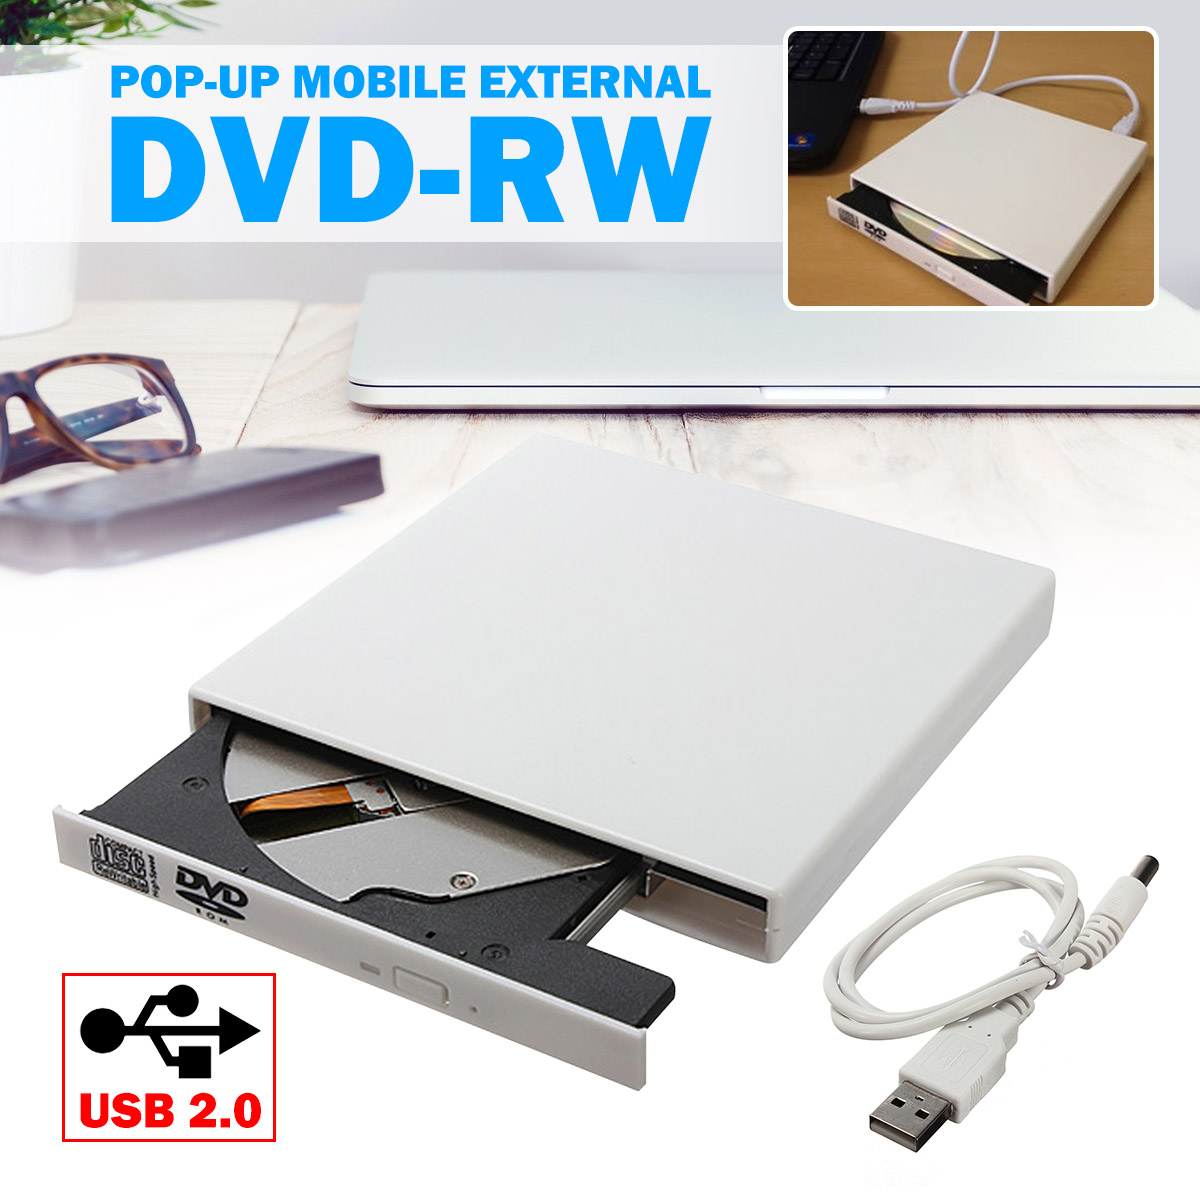 Alta Qualidade USB 2.0 Portátil Externo Ultra Slim Slot-in DVD-RW CD-RW CD ROM DVD Player Unidade Escritor Rewriter burner para PC